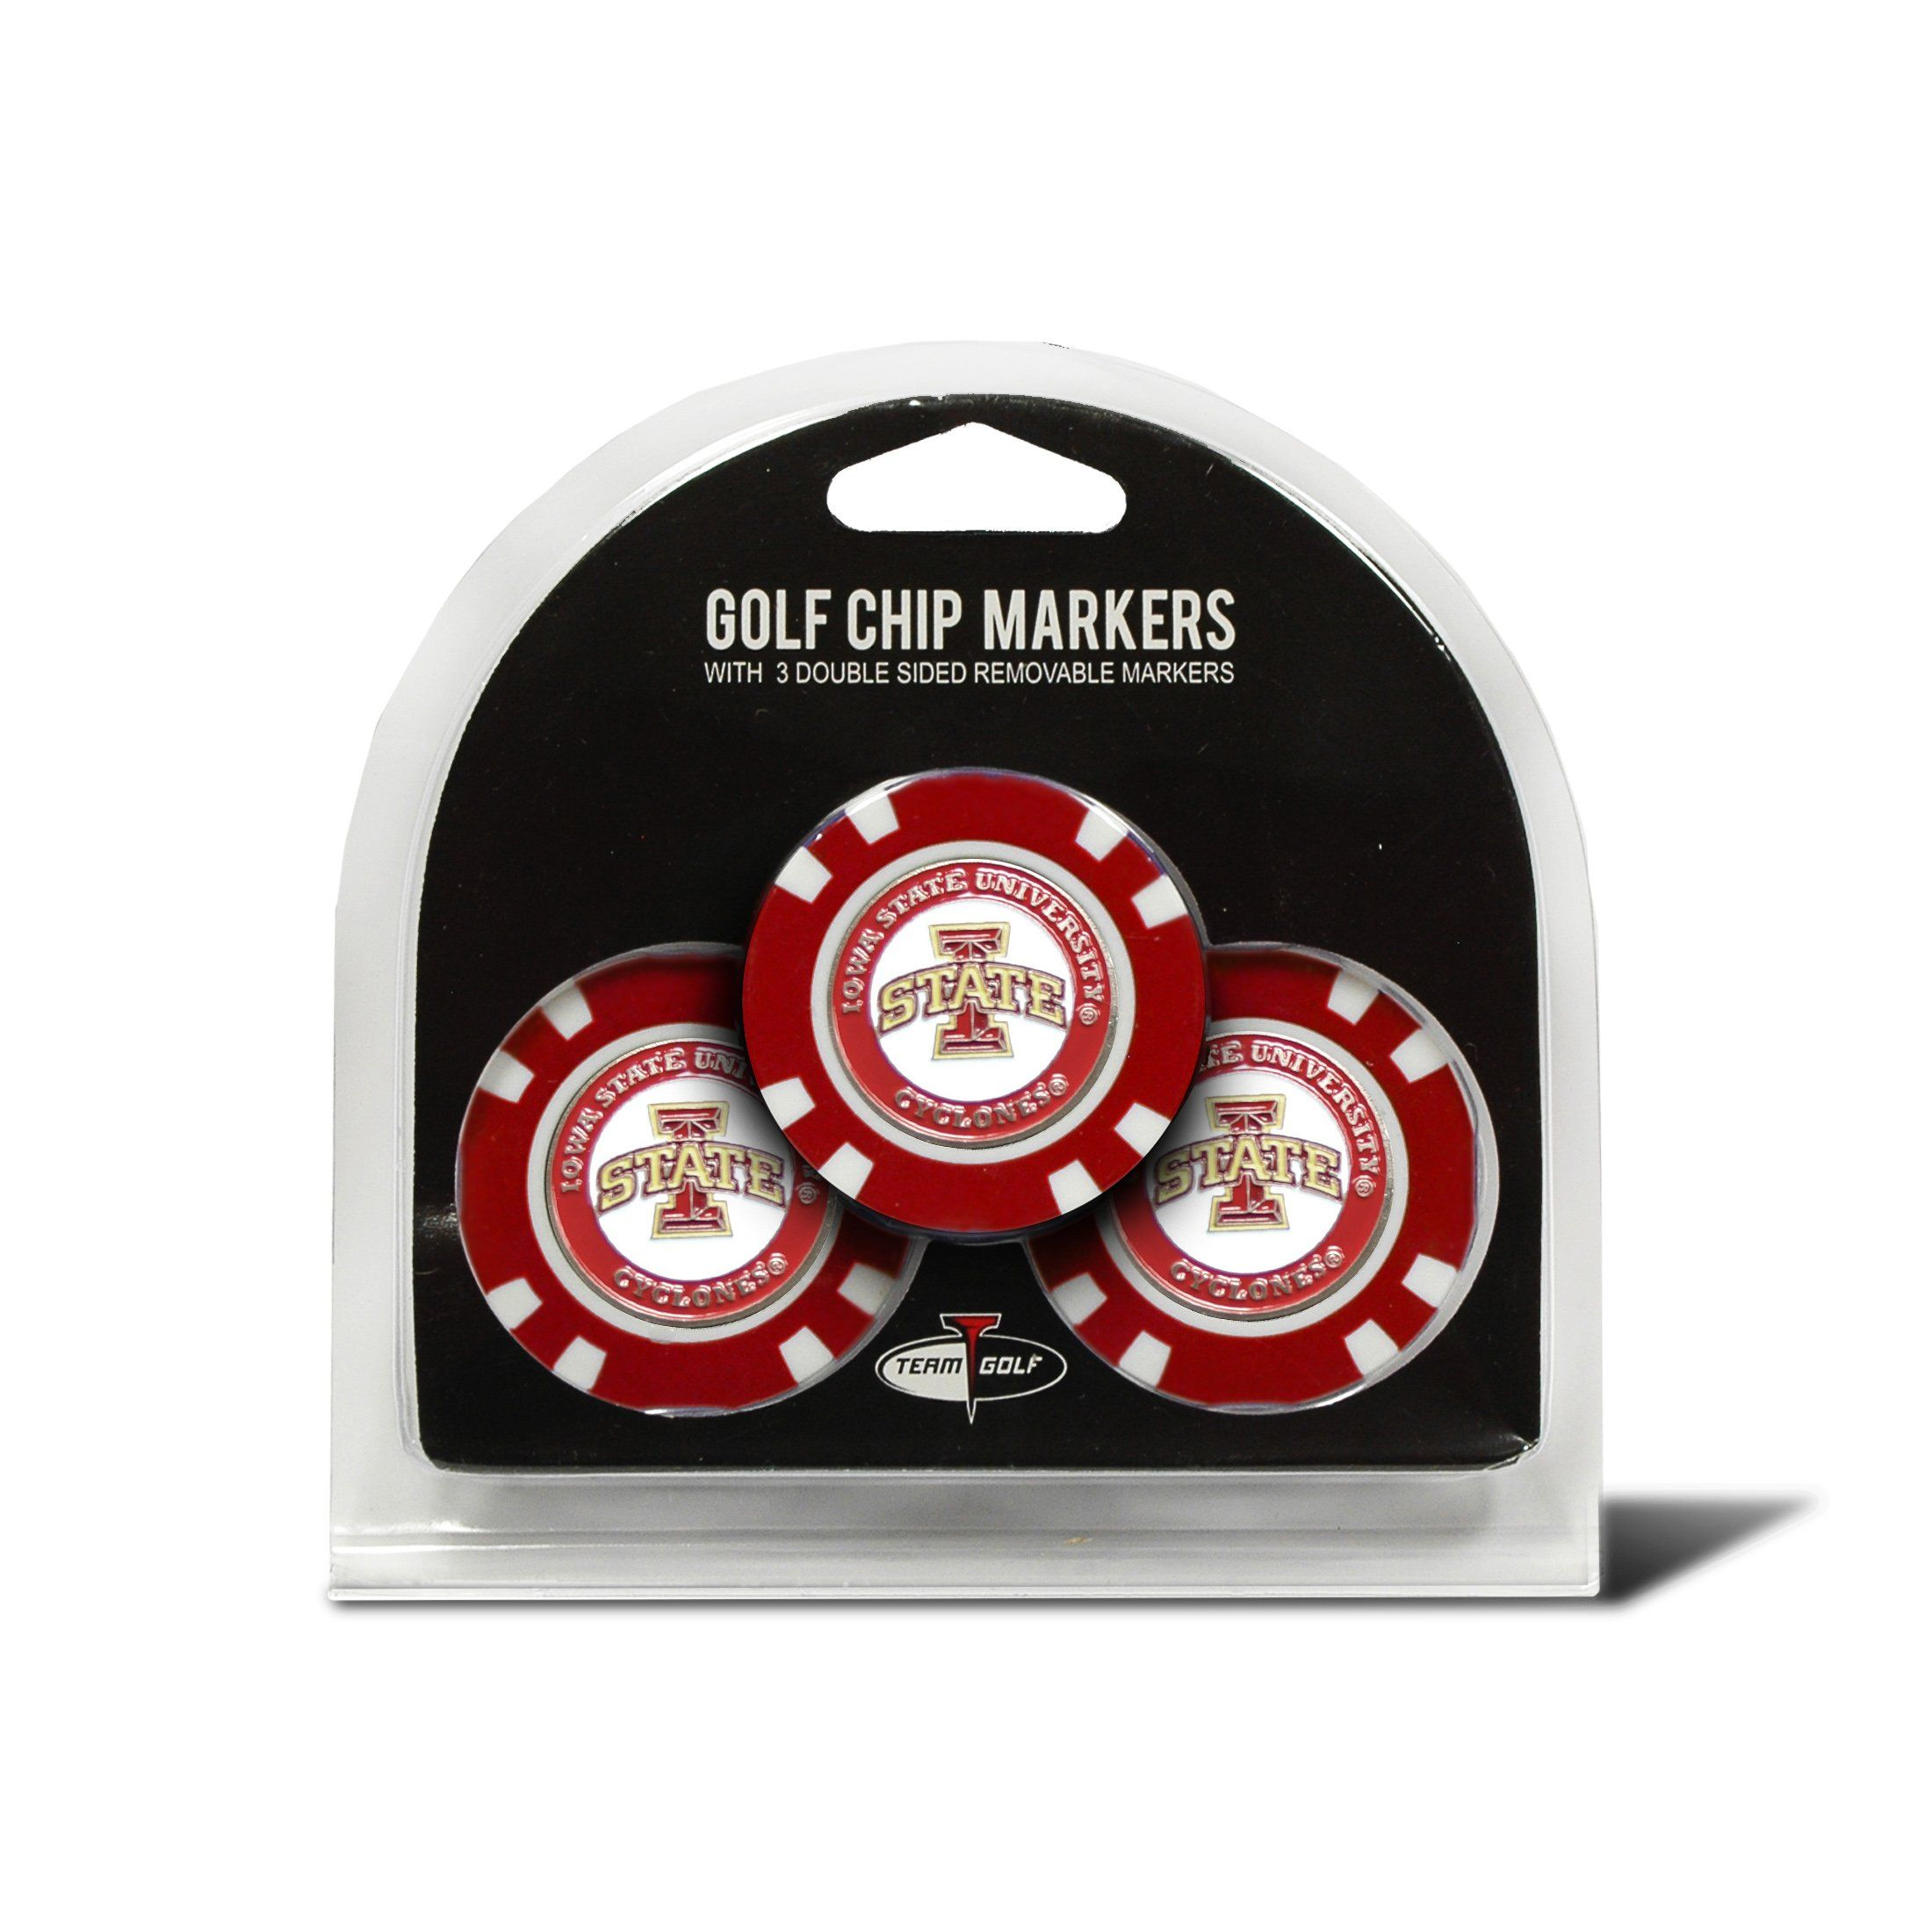 competitive price ed331 f5f1d Team Golf Cincinnati Bearcats 3-pack Poker Chip Ball Markers in 2019    Fashion   Golf chipping, Golf, Cincinnati bearcats